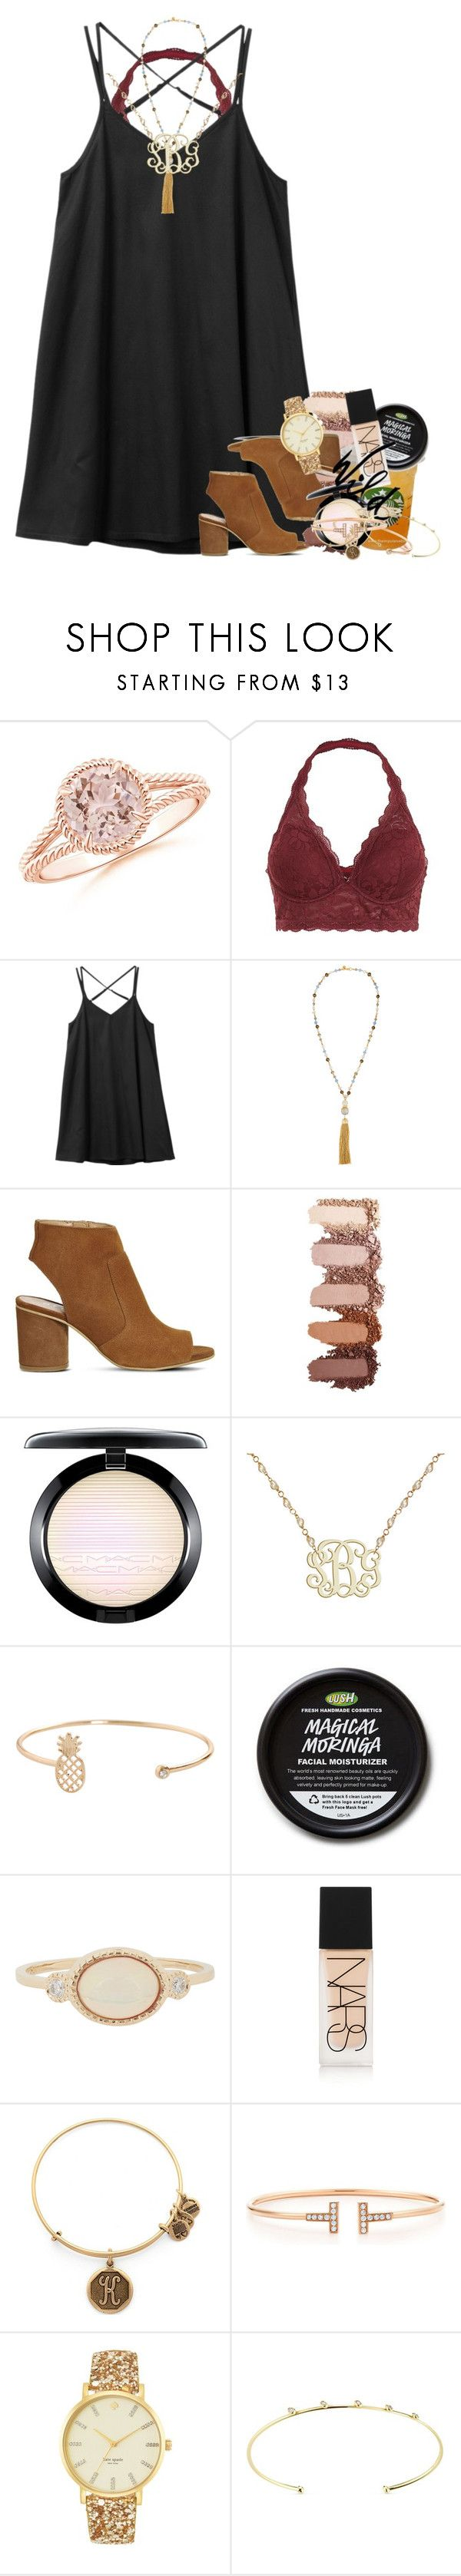 deciding whos worth your time  energy is hard. by ellaswiftie13 on Polyvore featuring RVCA, Lydell NYC, Office, MAC Cosmetics, Humble Chic, Jennie Kwon, NARS Cosmetics, Alex and Ani, Tiffany  Co. and Kate Spade